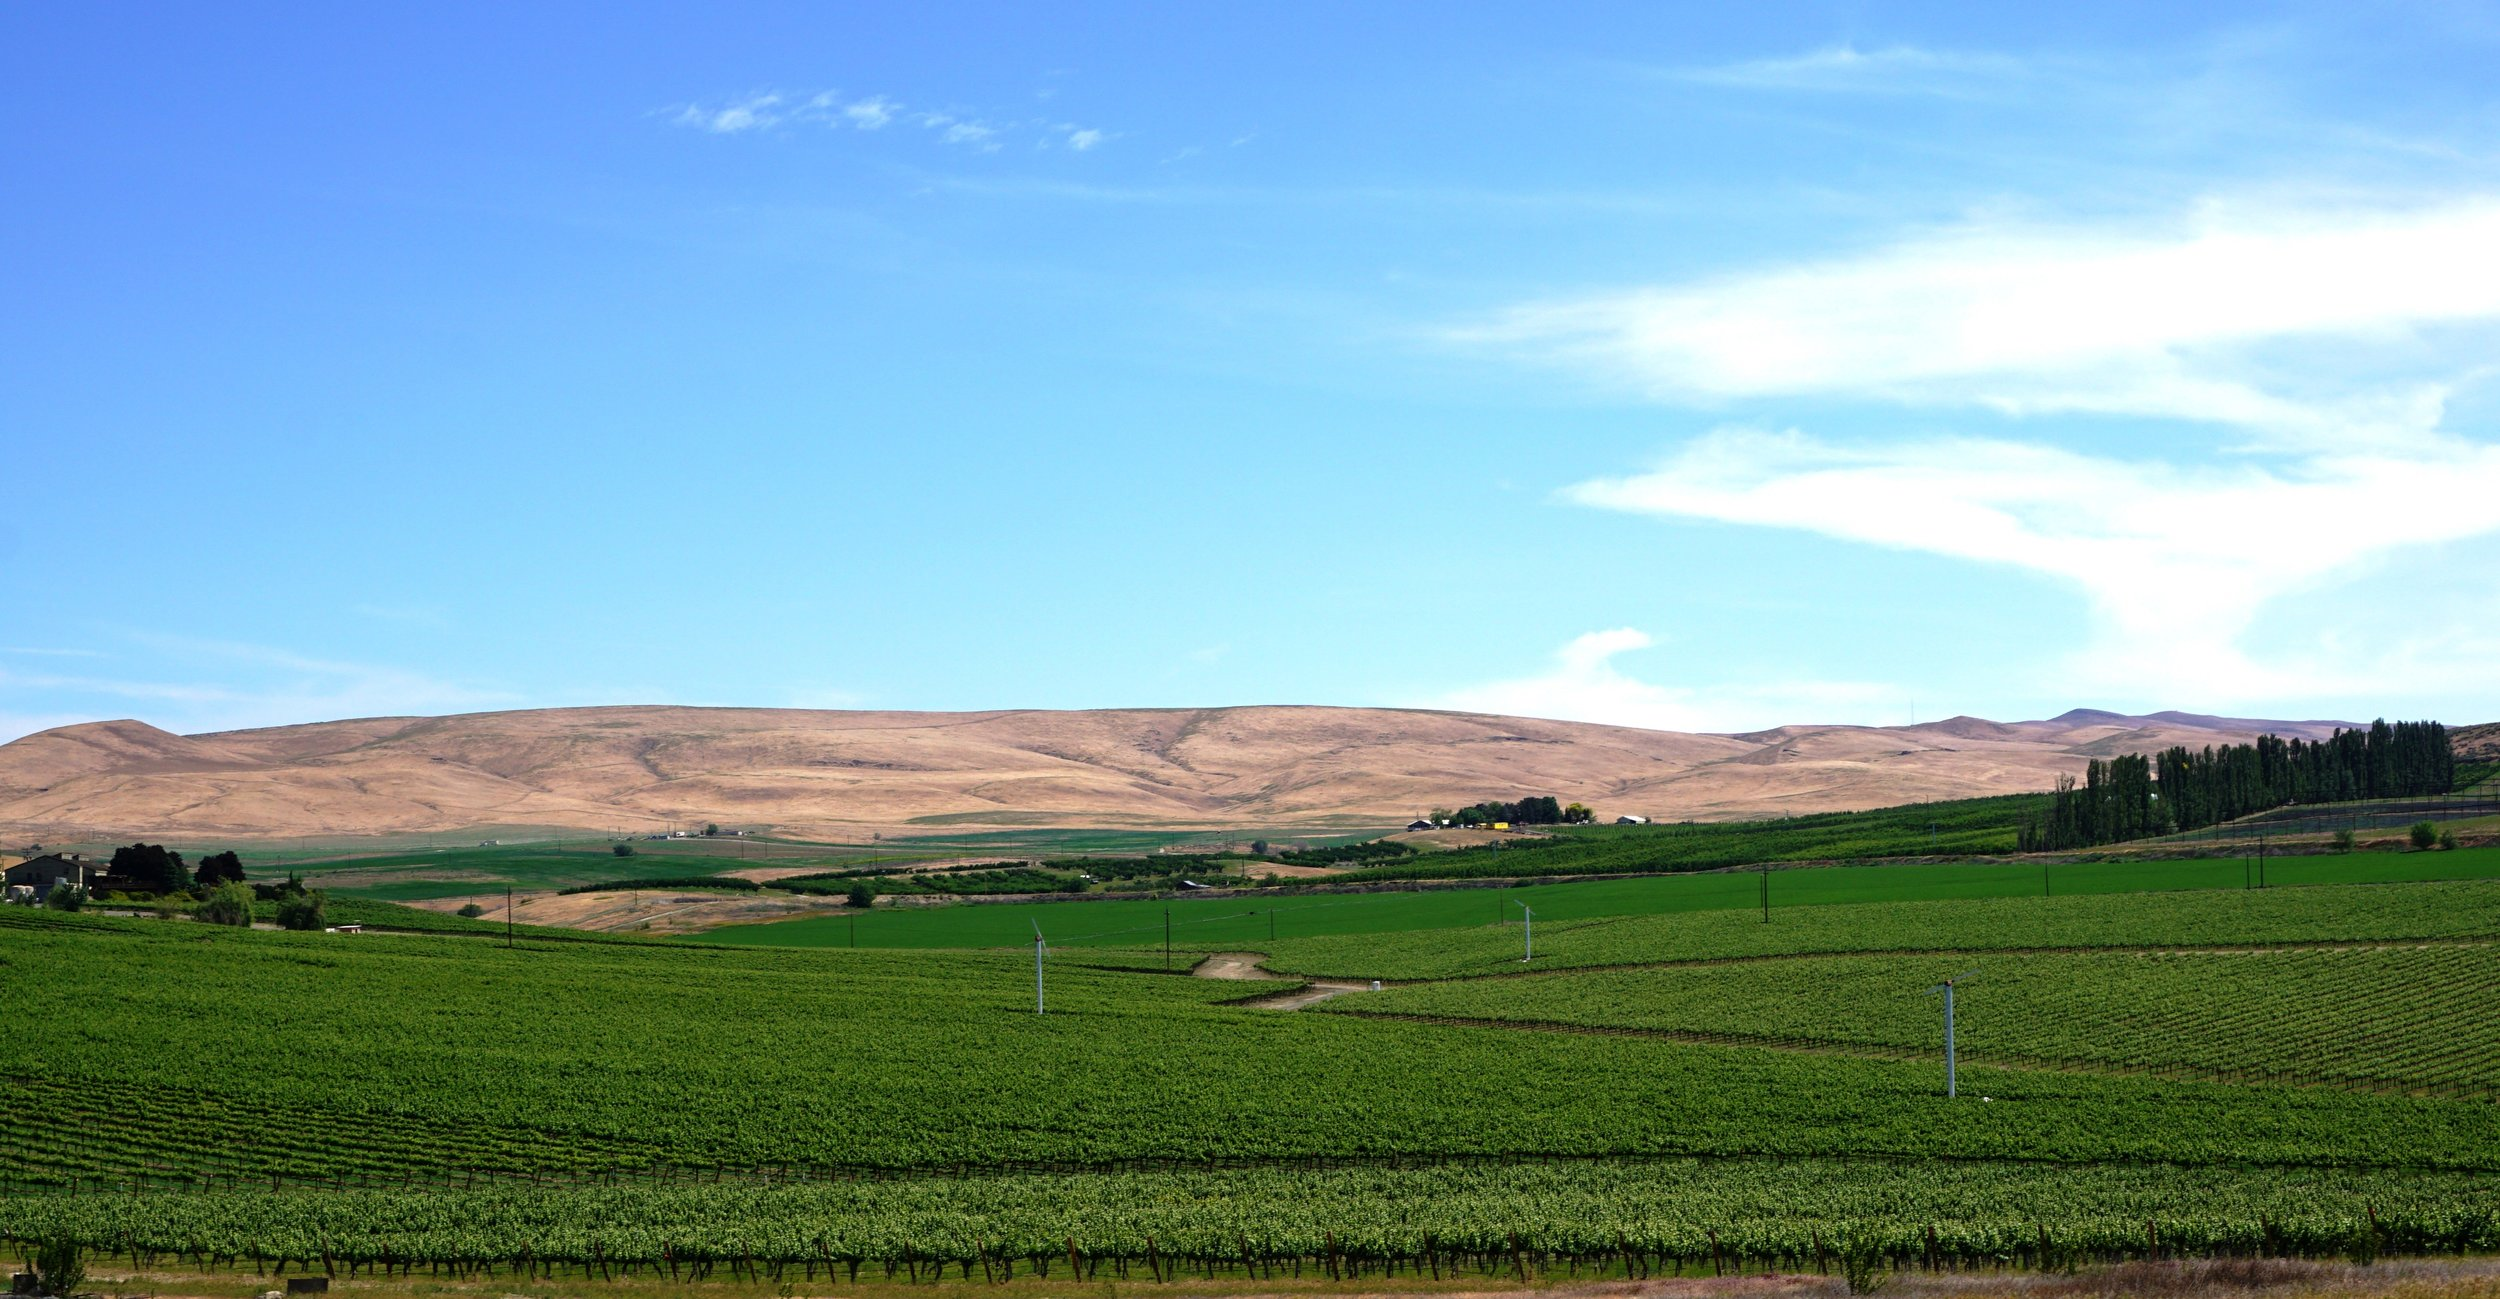 Grape vines and fruit trees rolling along its floor and hillsides are Yakima Valley's version of a red carpet for visitors to this idyllic wine country getaway. Photo courtesy of Viki Eierdam.